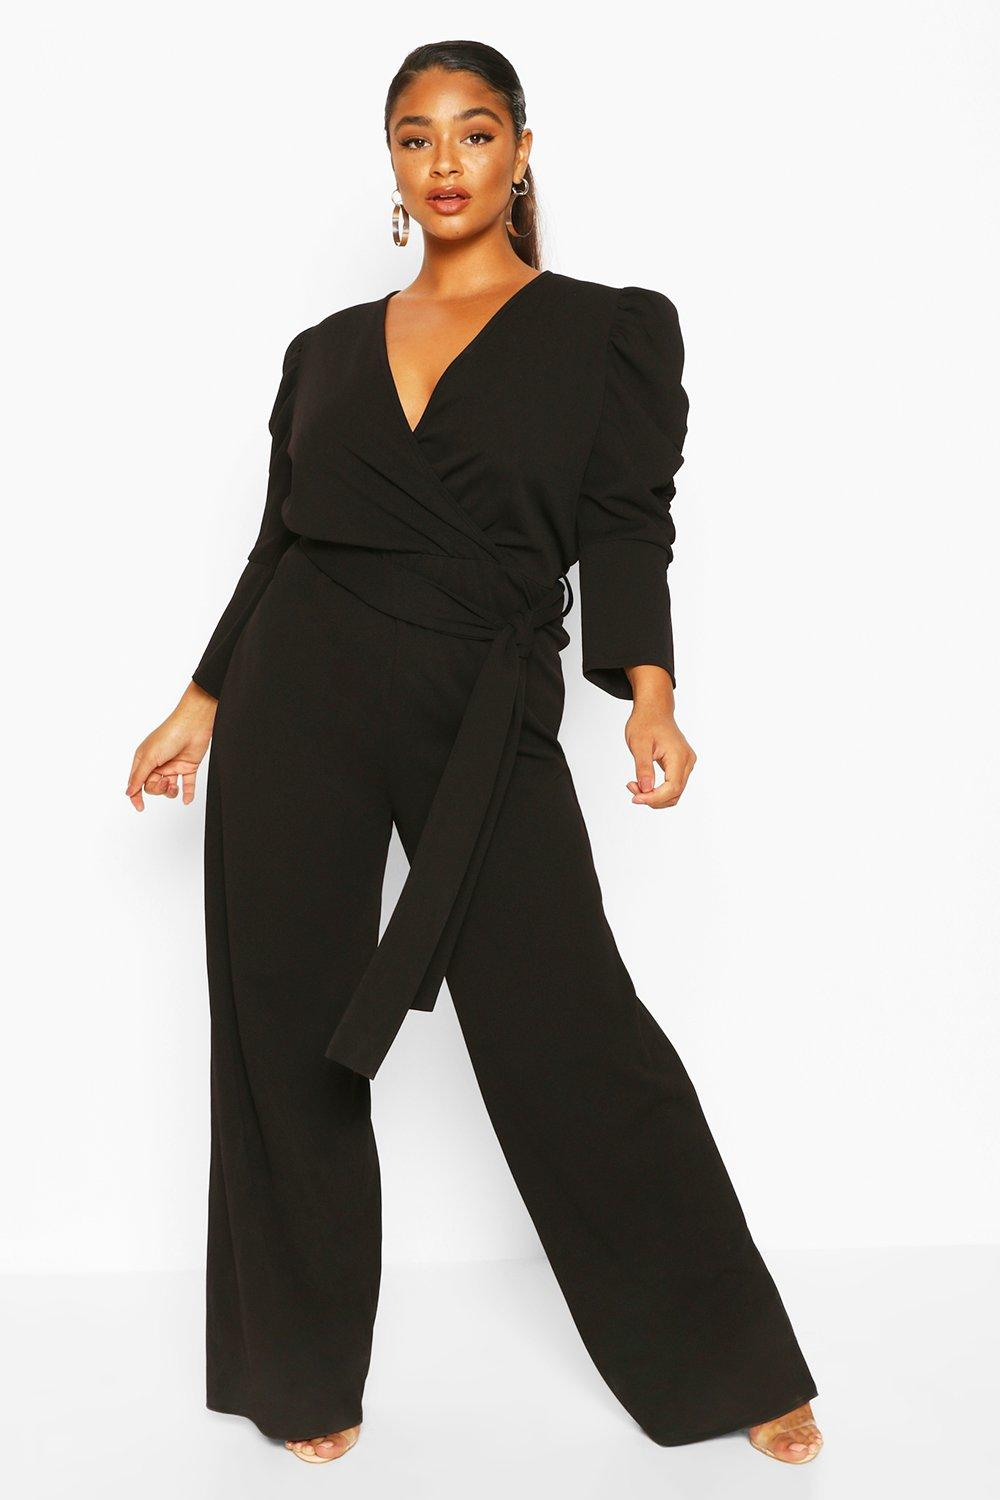 boohoo Womens Plus Ruched Puff Sleeve Wrap Belted Jumpsuit - Black - 28, Black